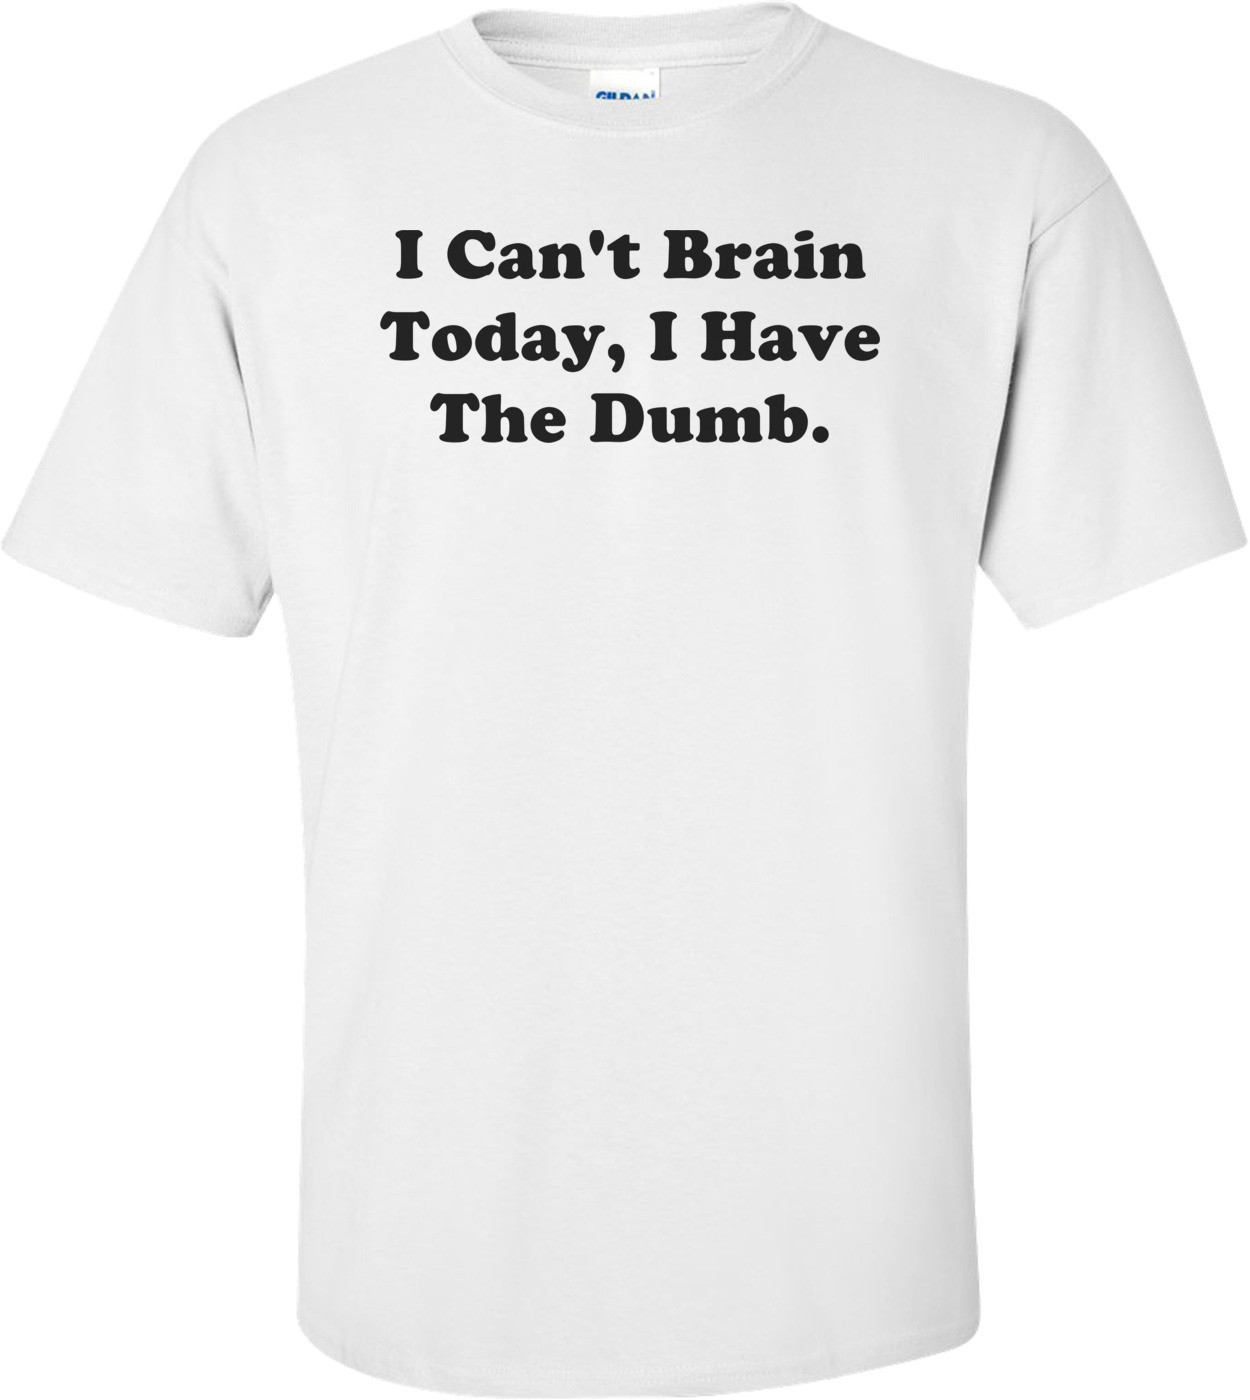 I Can't Brain Today, I Have The Dumb. Shirt